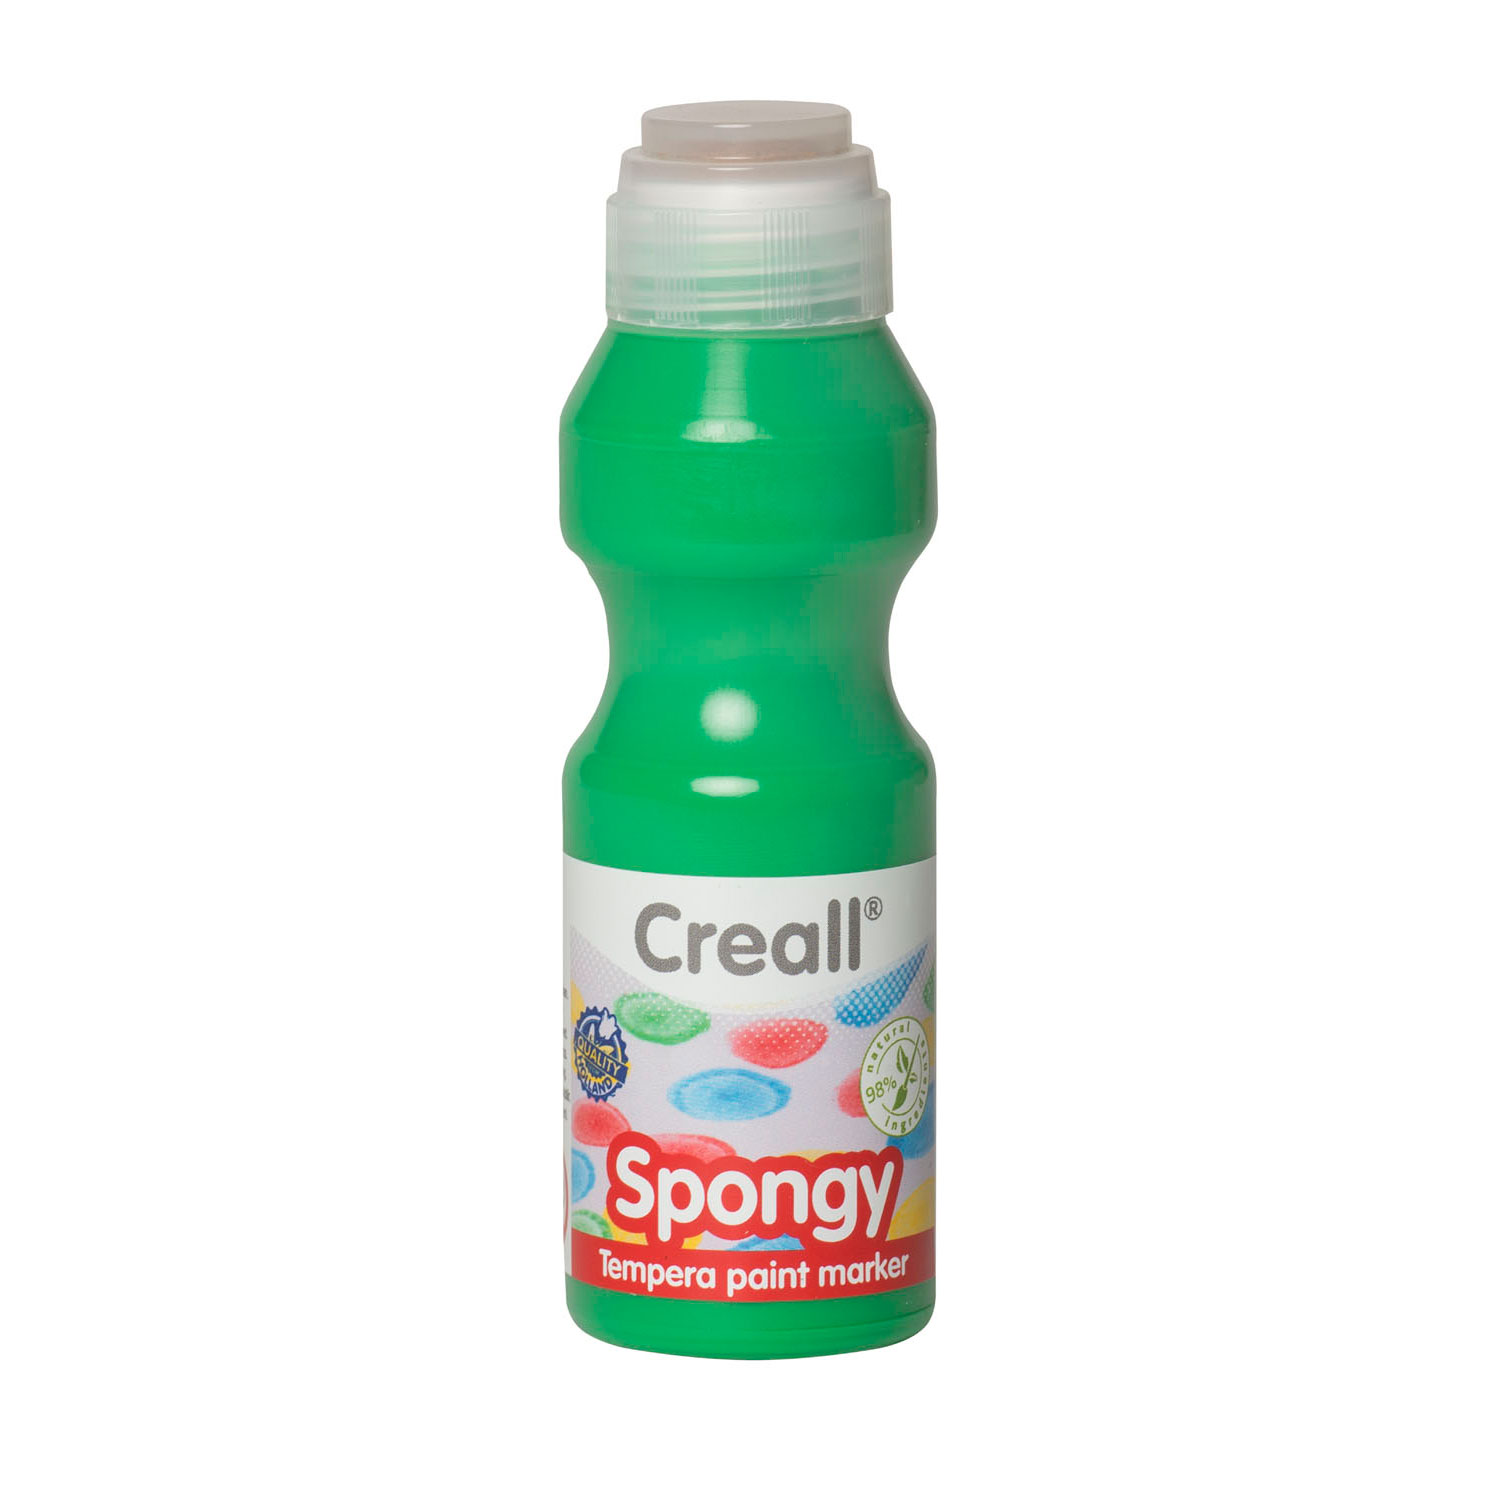 Creall Spongy Verfstift Groen, 70ml